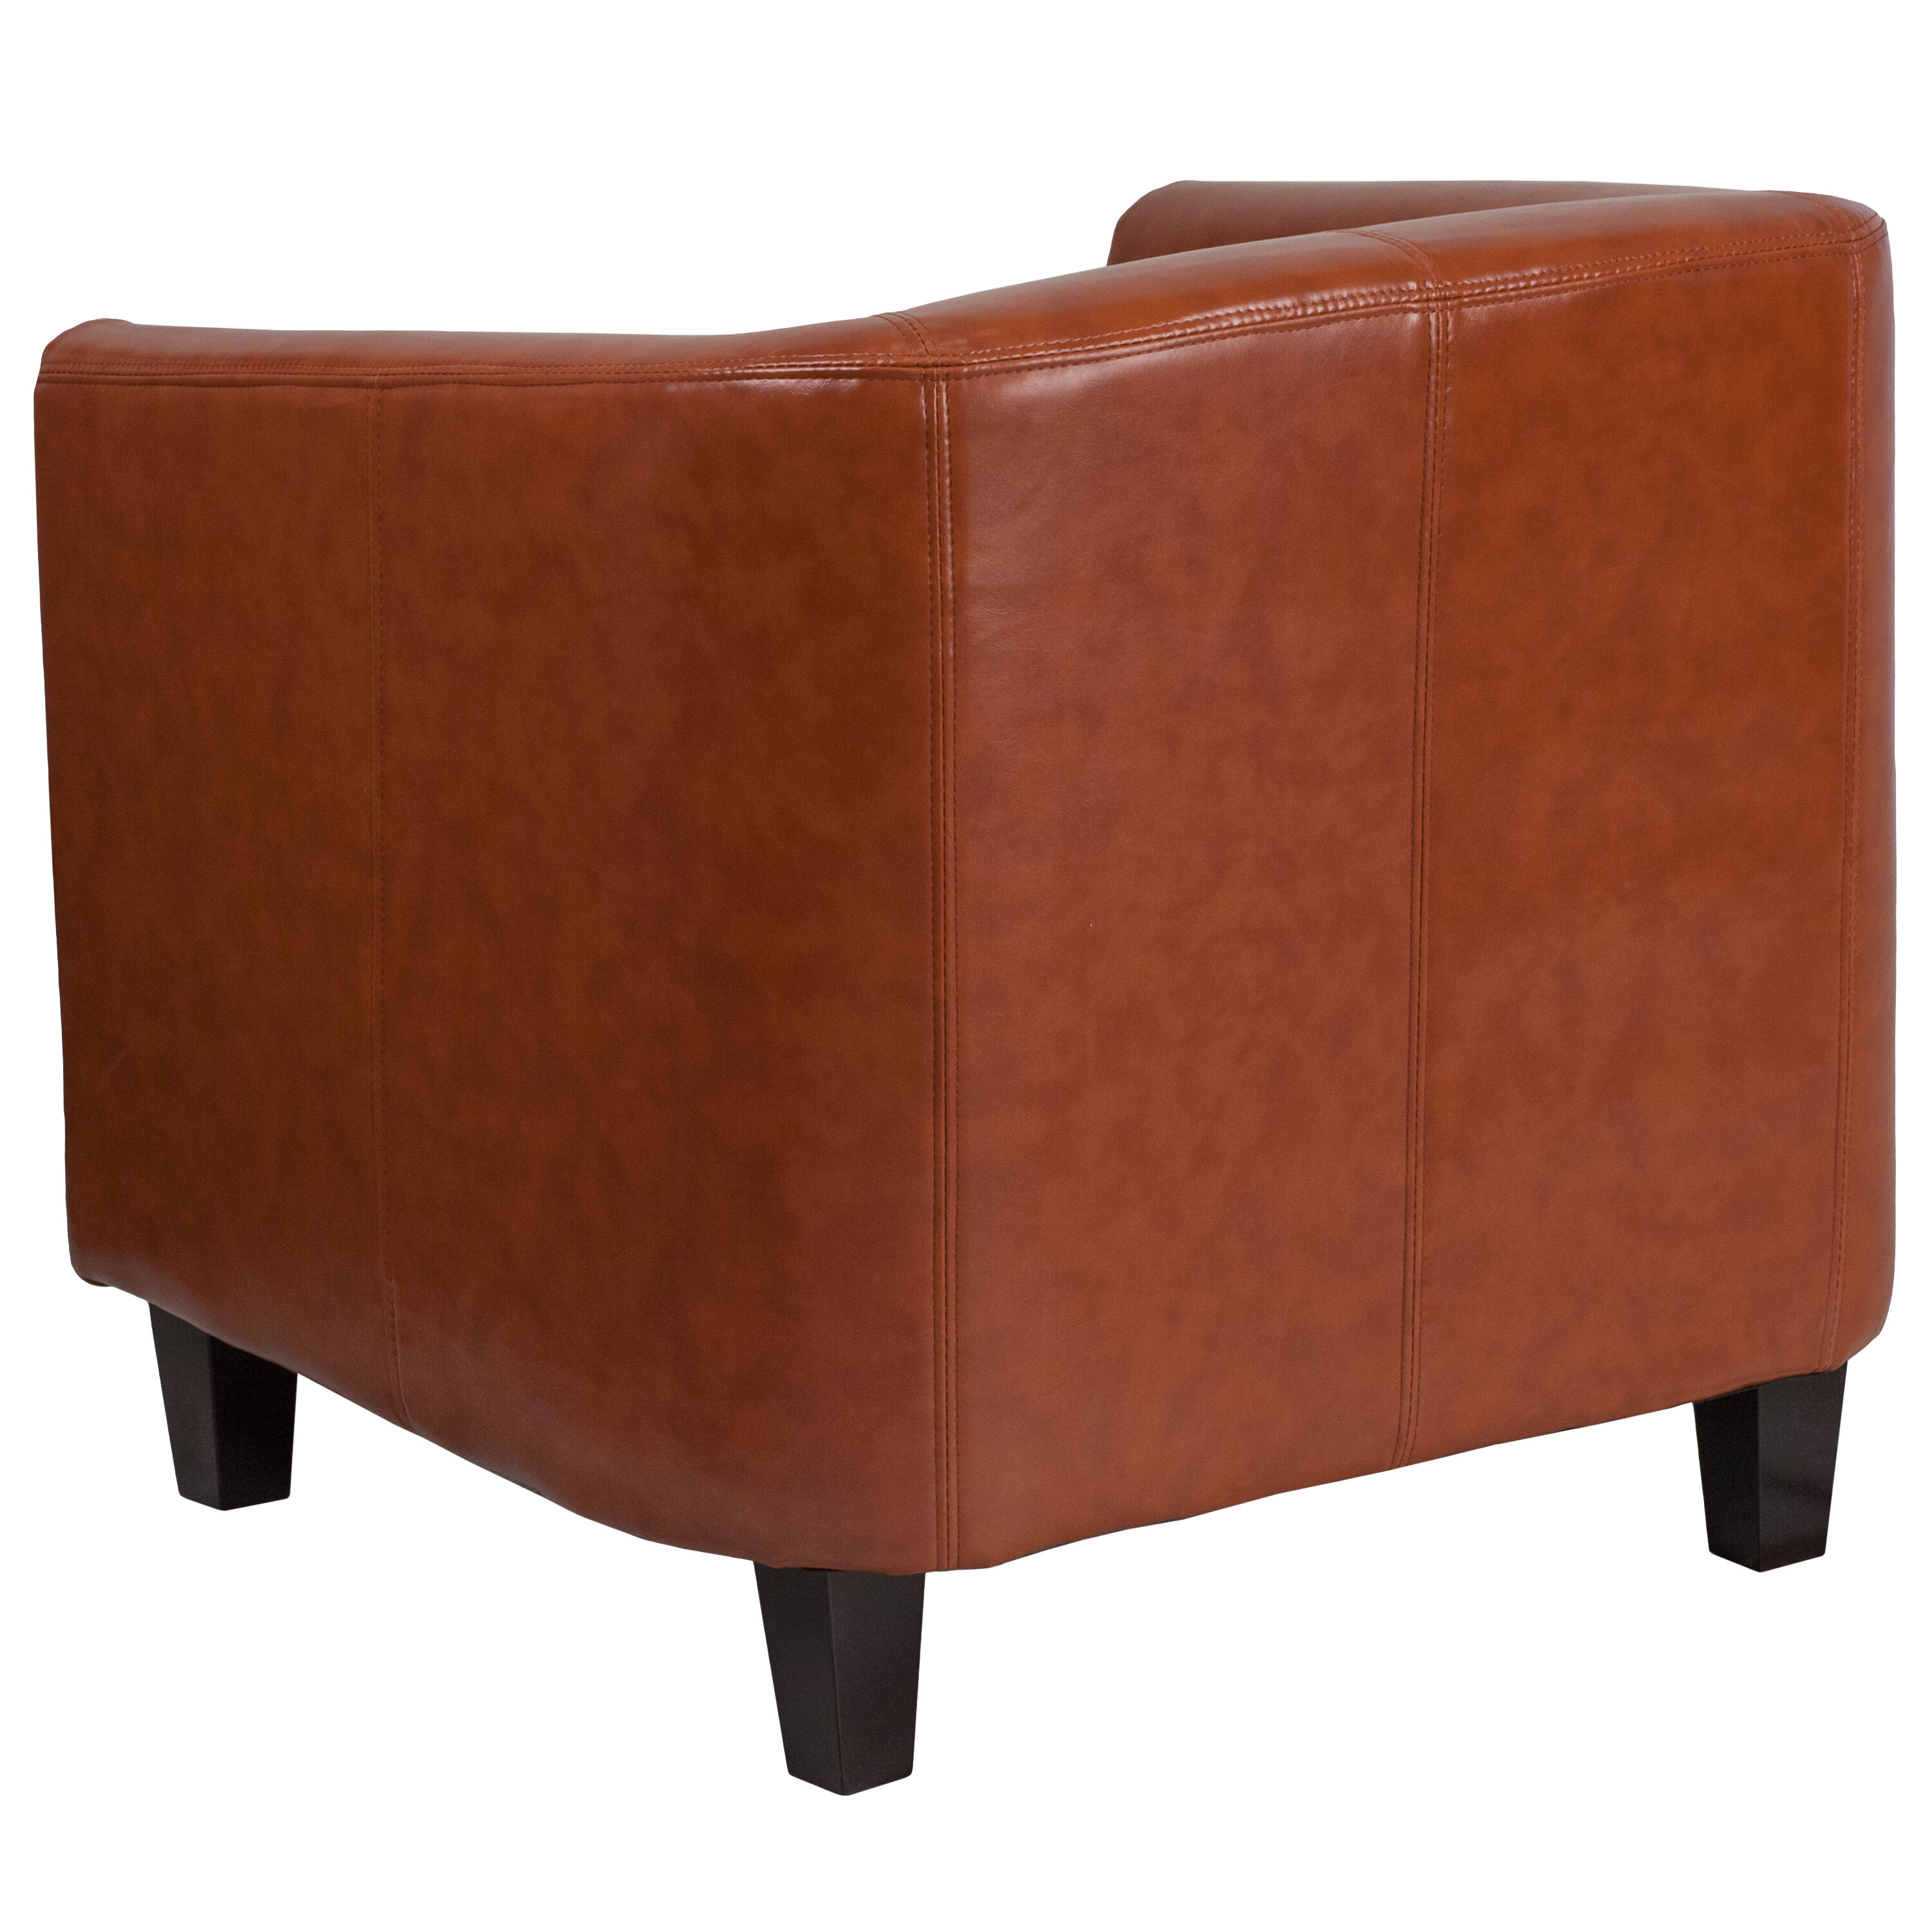 Our Cognac Leather Lounge Chair Is On Sale Now.